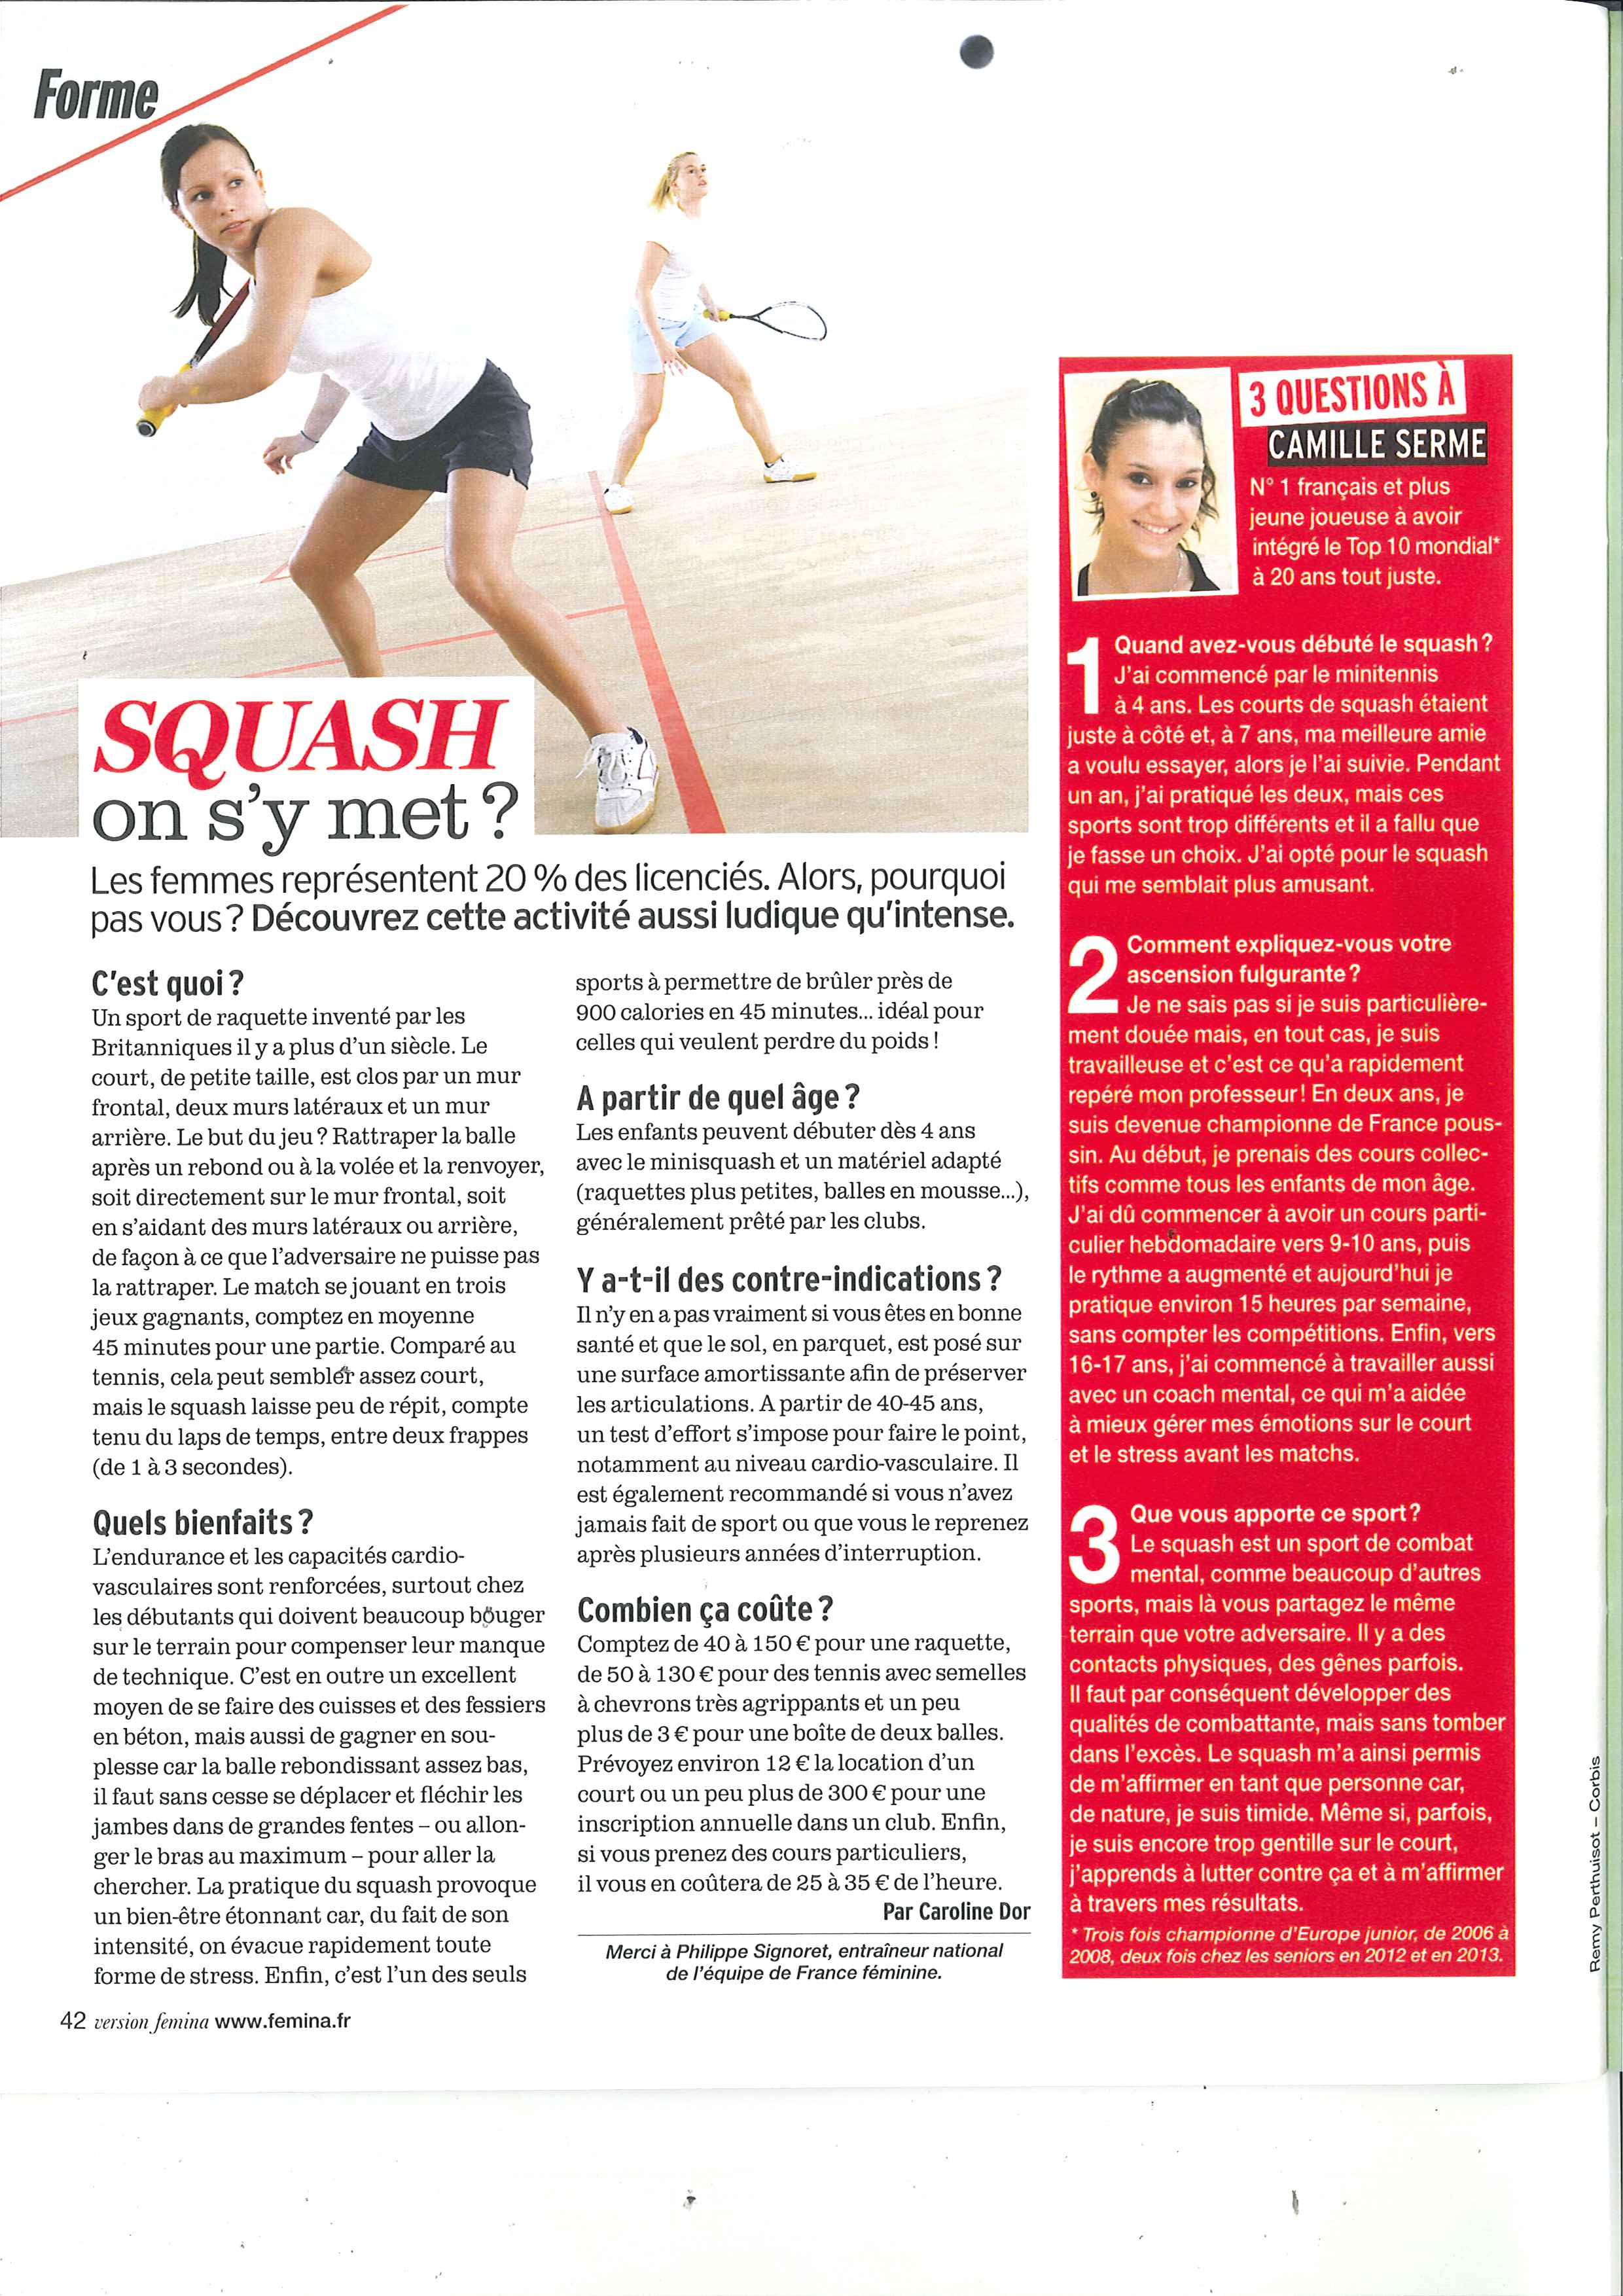 Article VERSION FEMINA - Squash - 10112013